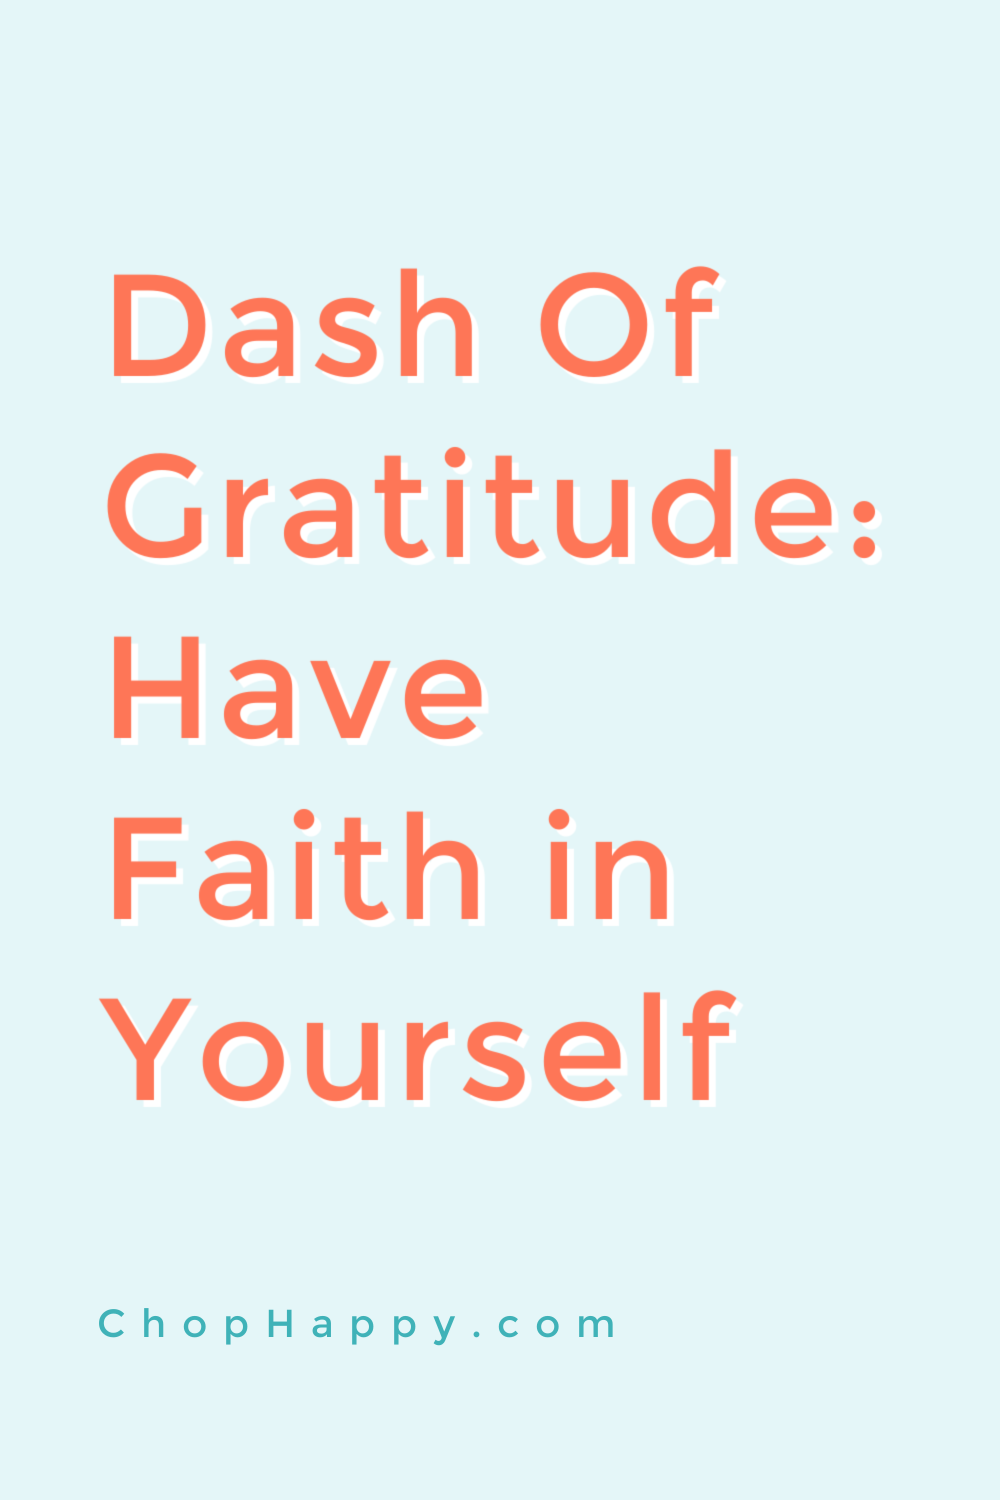 Dash of Gratitude: Have Faith in Yourself! When we bought ourselves we need to see that an attitude of gratitude and faith gets us closer to our dreams. Happy Manifesting! www.ChopHappy.com #gratitude #faith